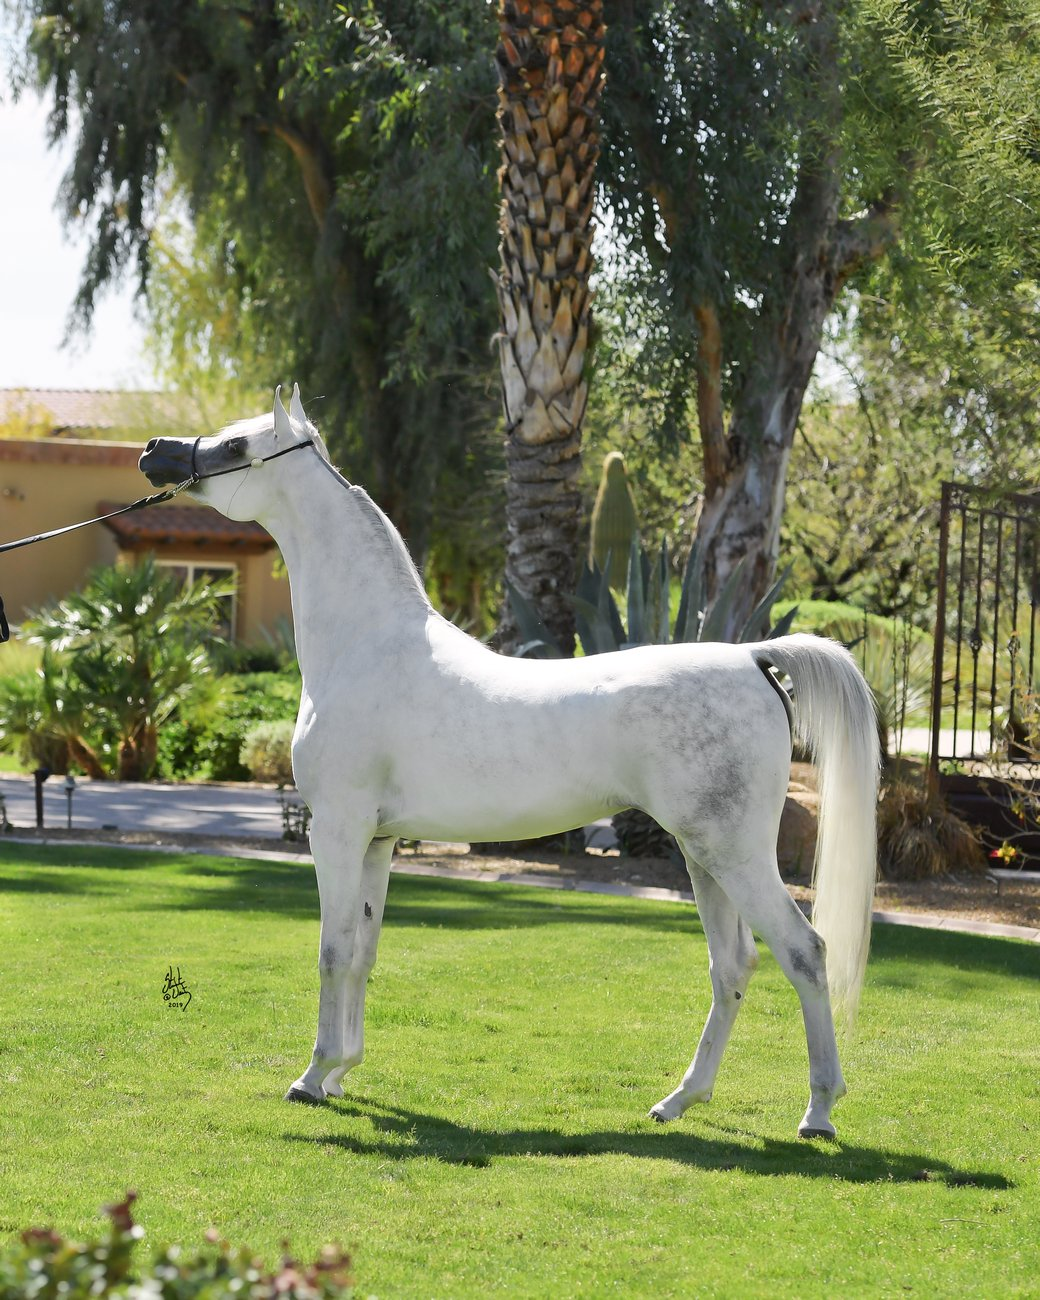 One of the great daughters of El Jahez WH – Italya Meia Lua (out of Ivana El Johann), by Stuart Vesty